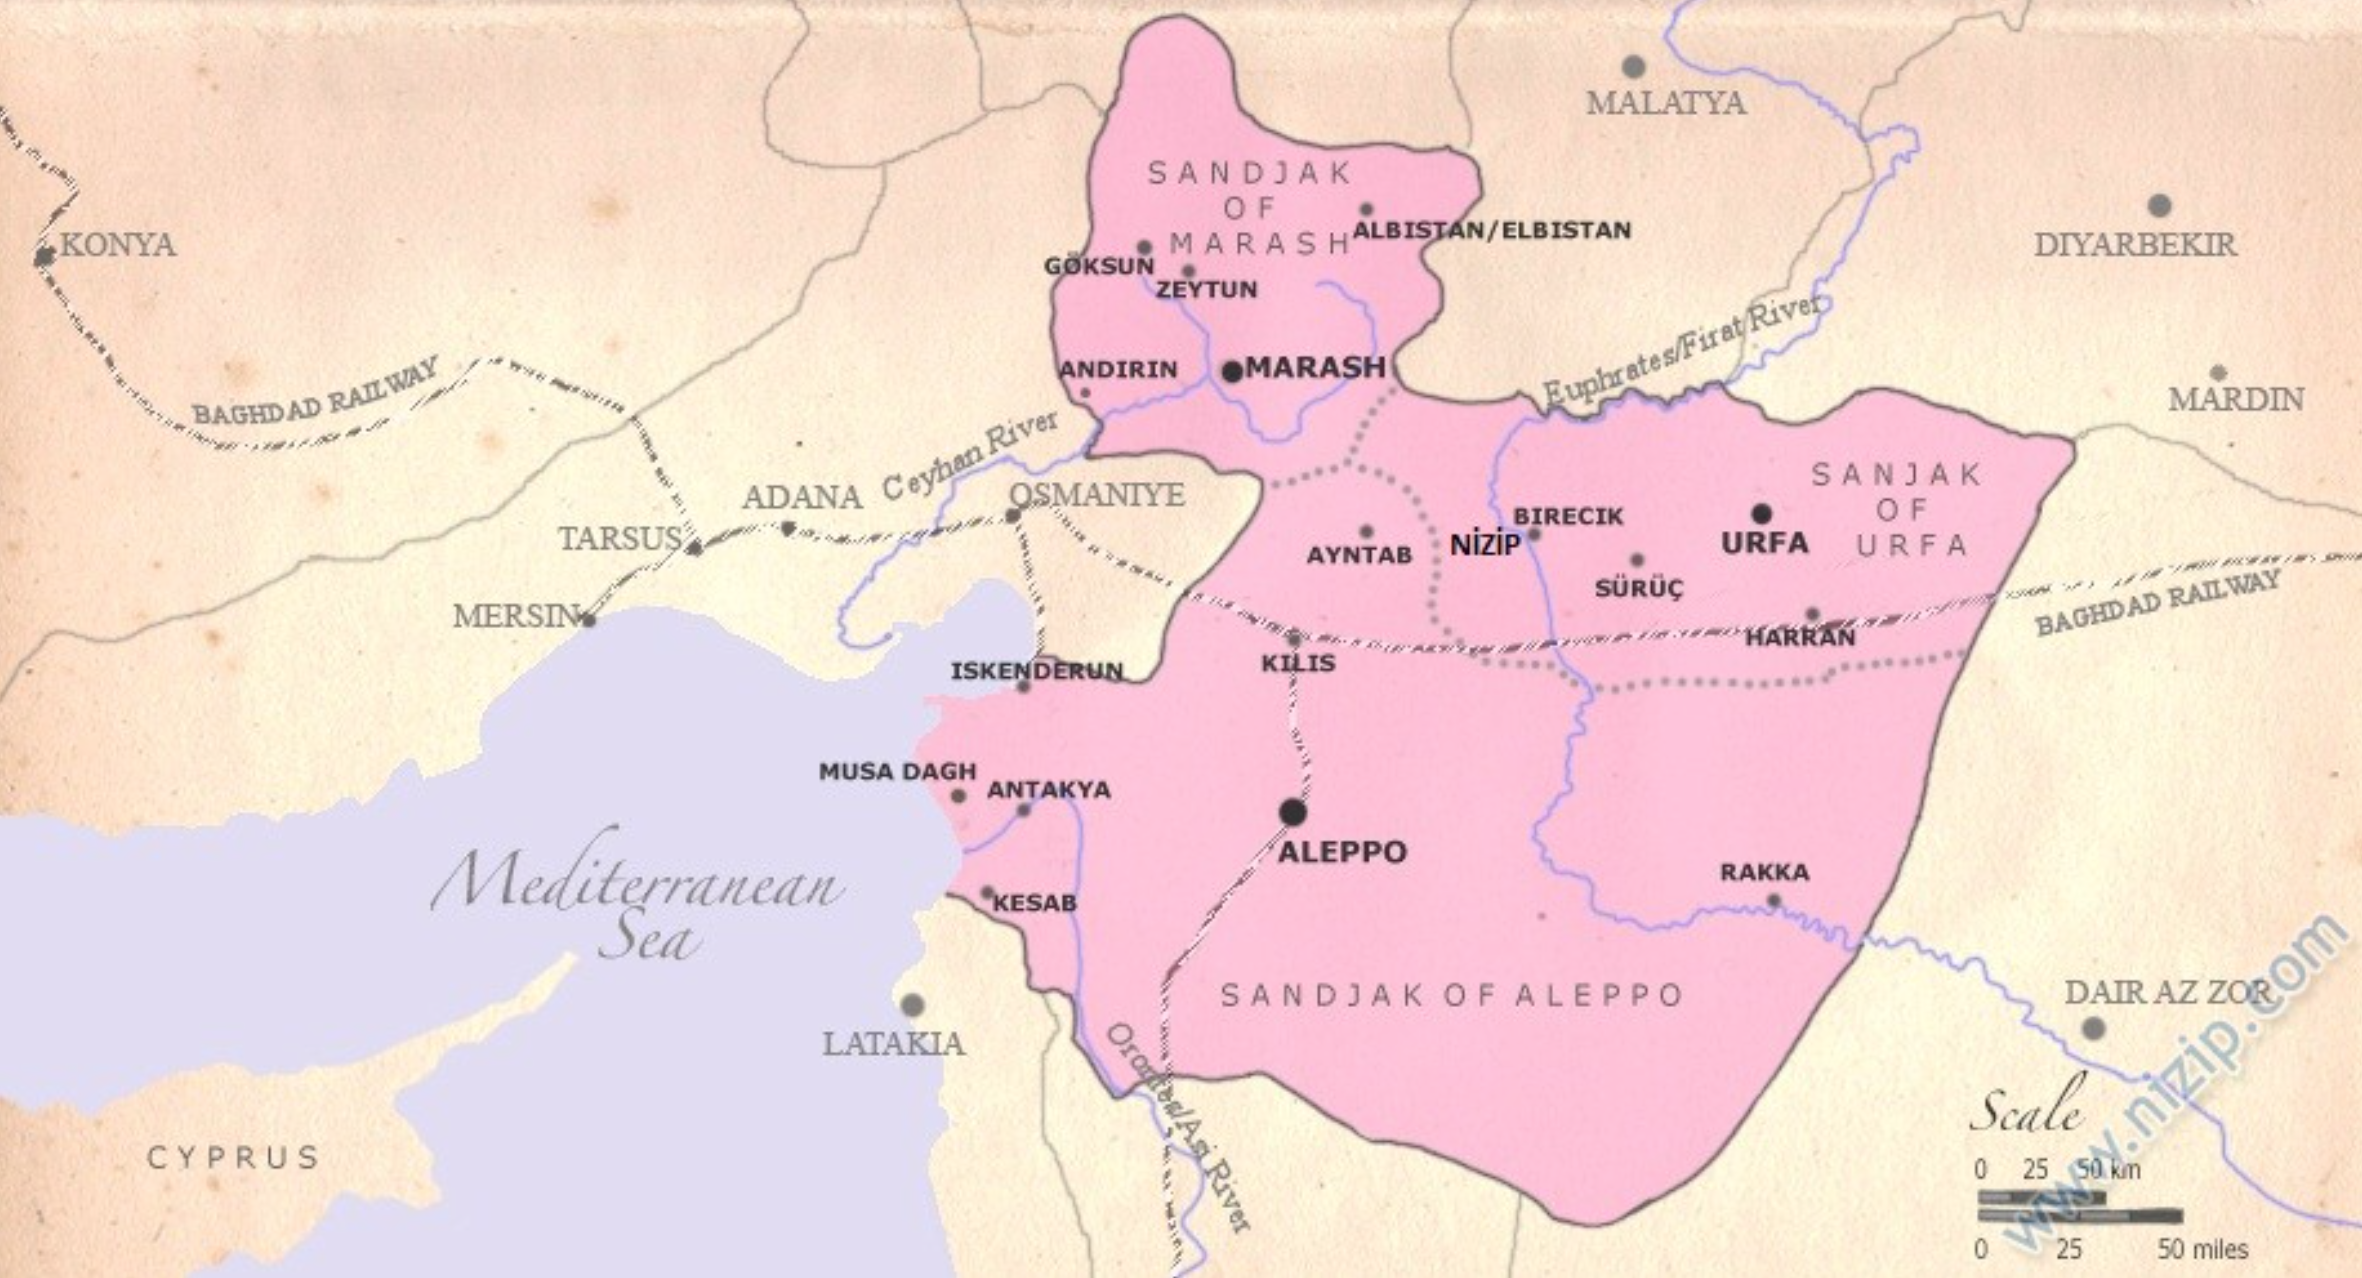 Aleppo Province of the Ottoman Empire in the early 20th Century